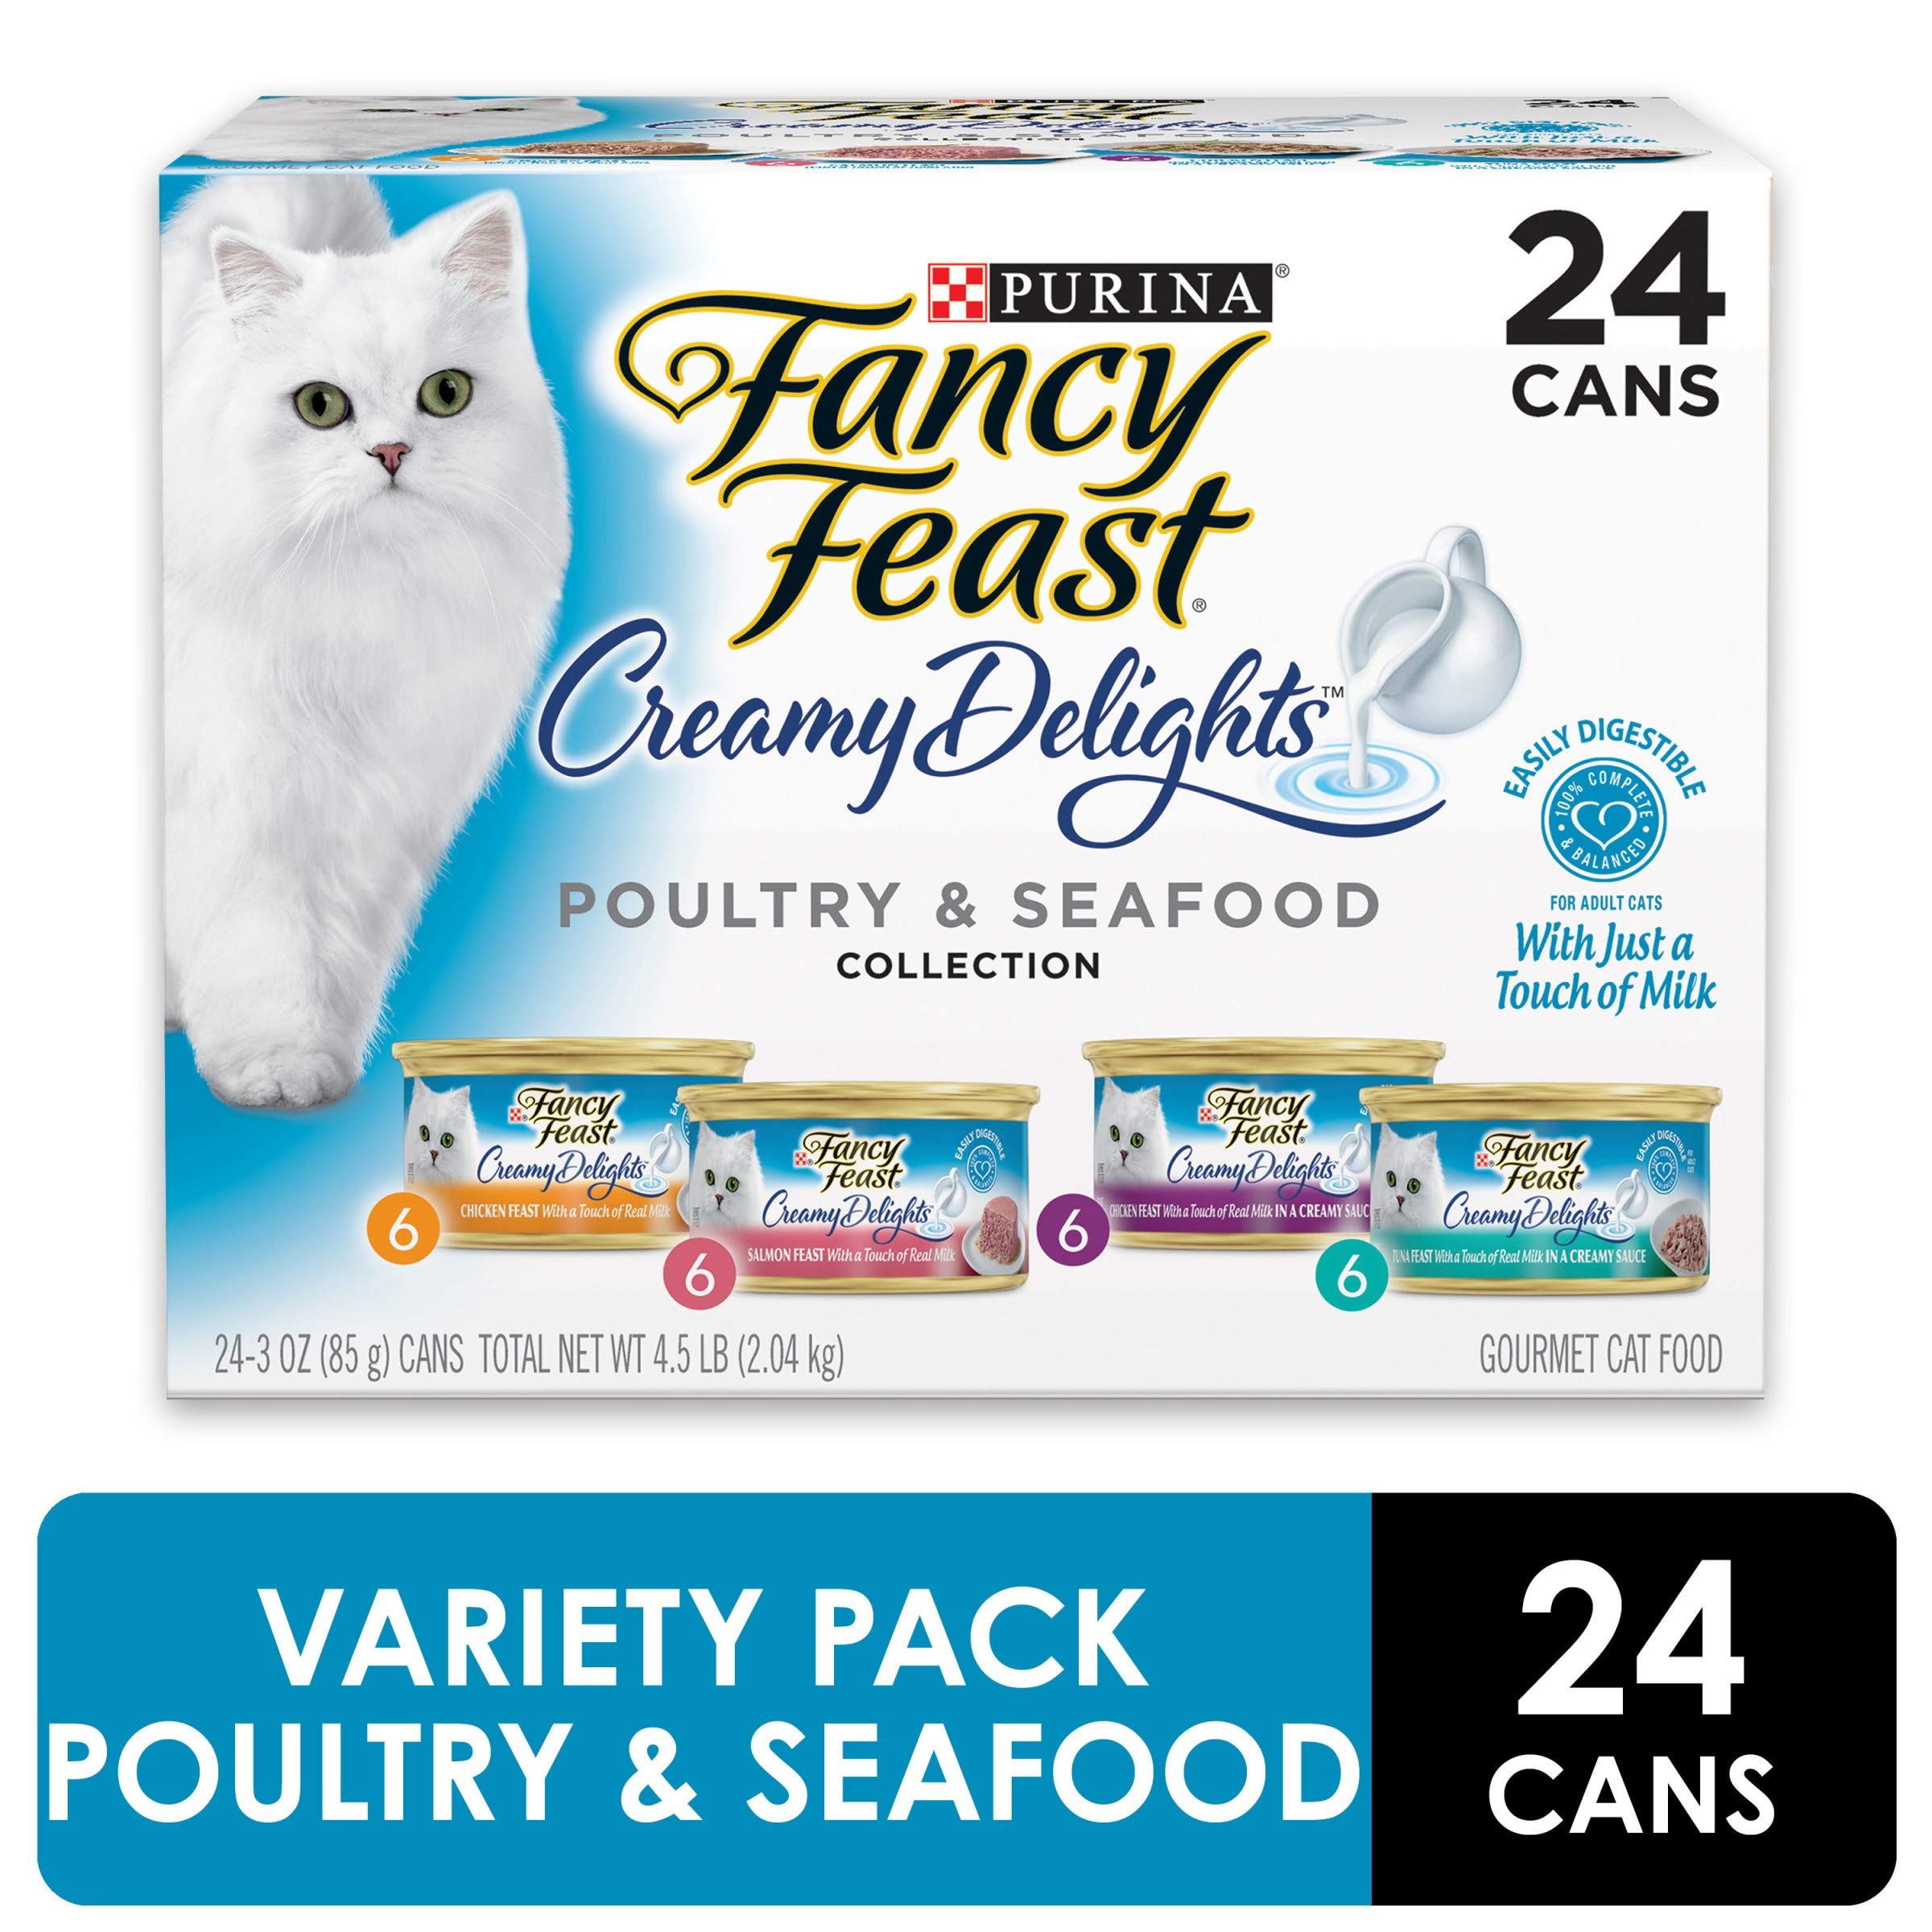 Purina Fancy Feast Wet Cat Food Variety Pack, Creamy Delights Poultry & Seafood Collection - (24) 3 oz. Cans by Purina Fancy Feast